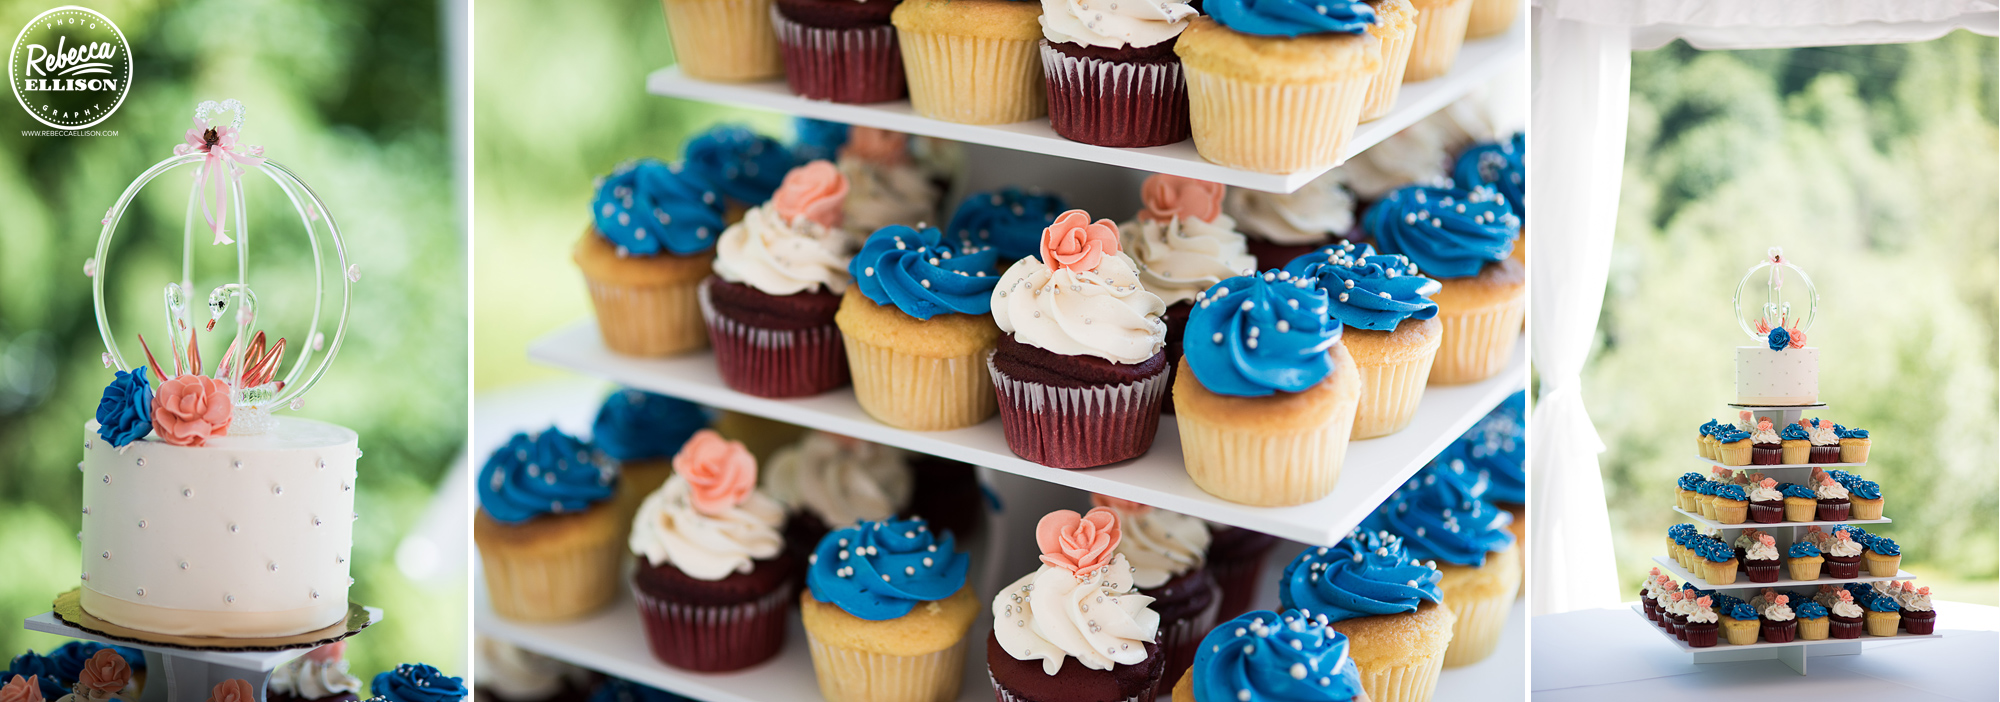 Cupcakes and dessert at a DIY peach and blue wedding photographed by Rebecca Ellison photography